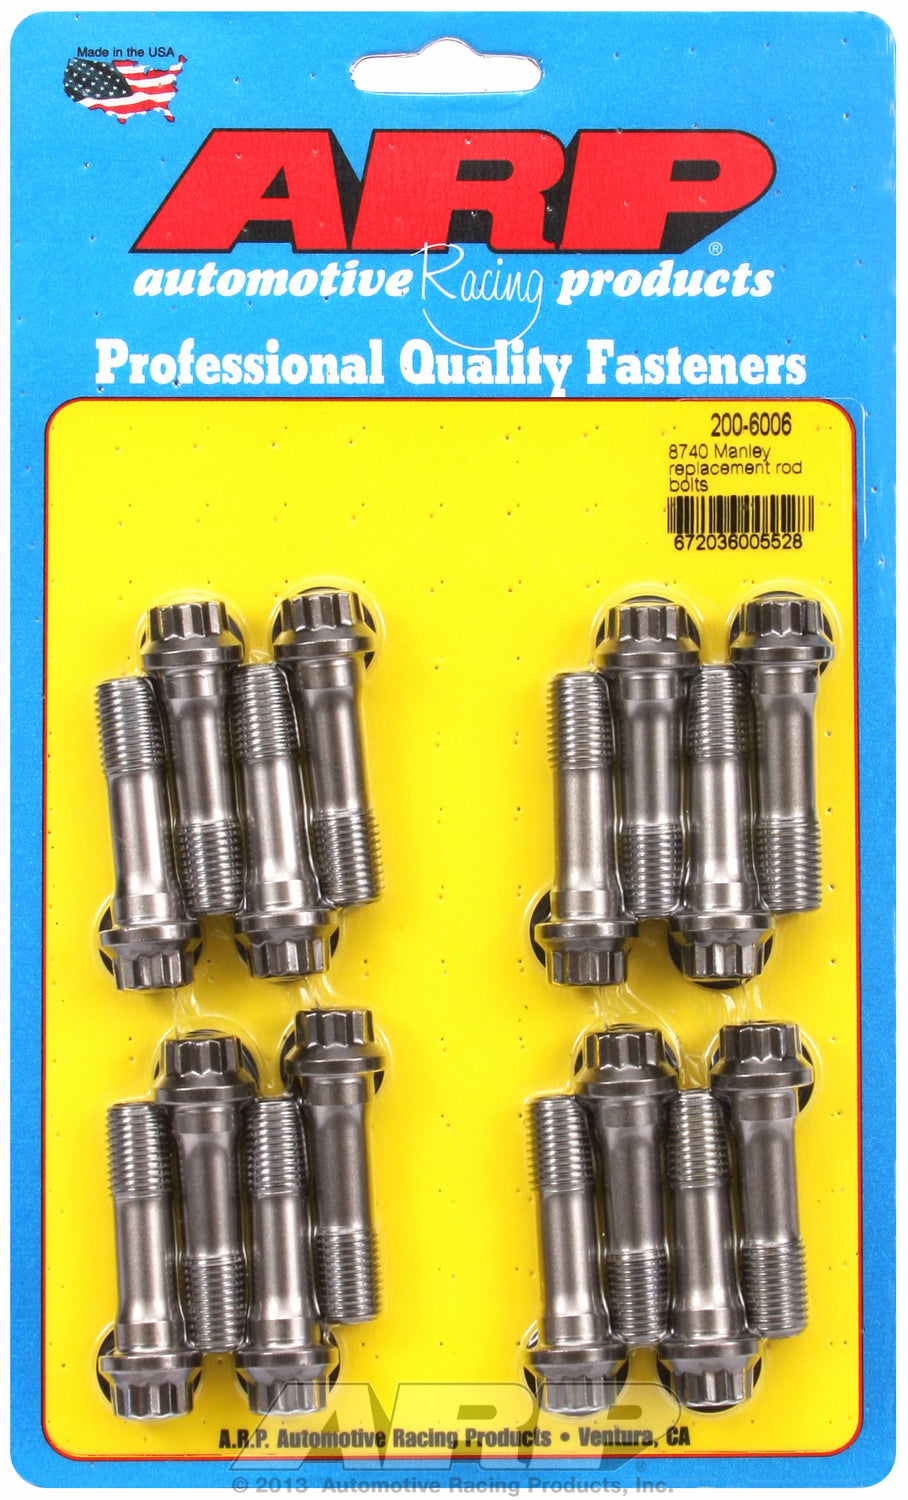 8740 General Replacement Rod Bolt Kit Complete Manley Replacement